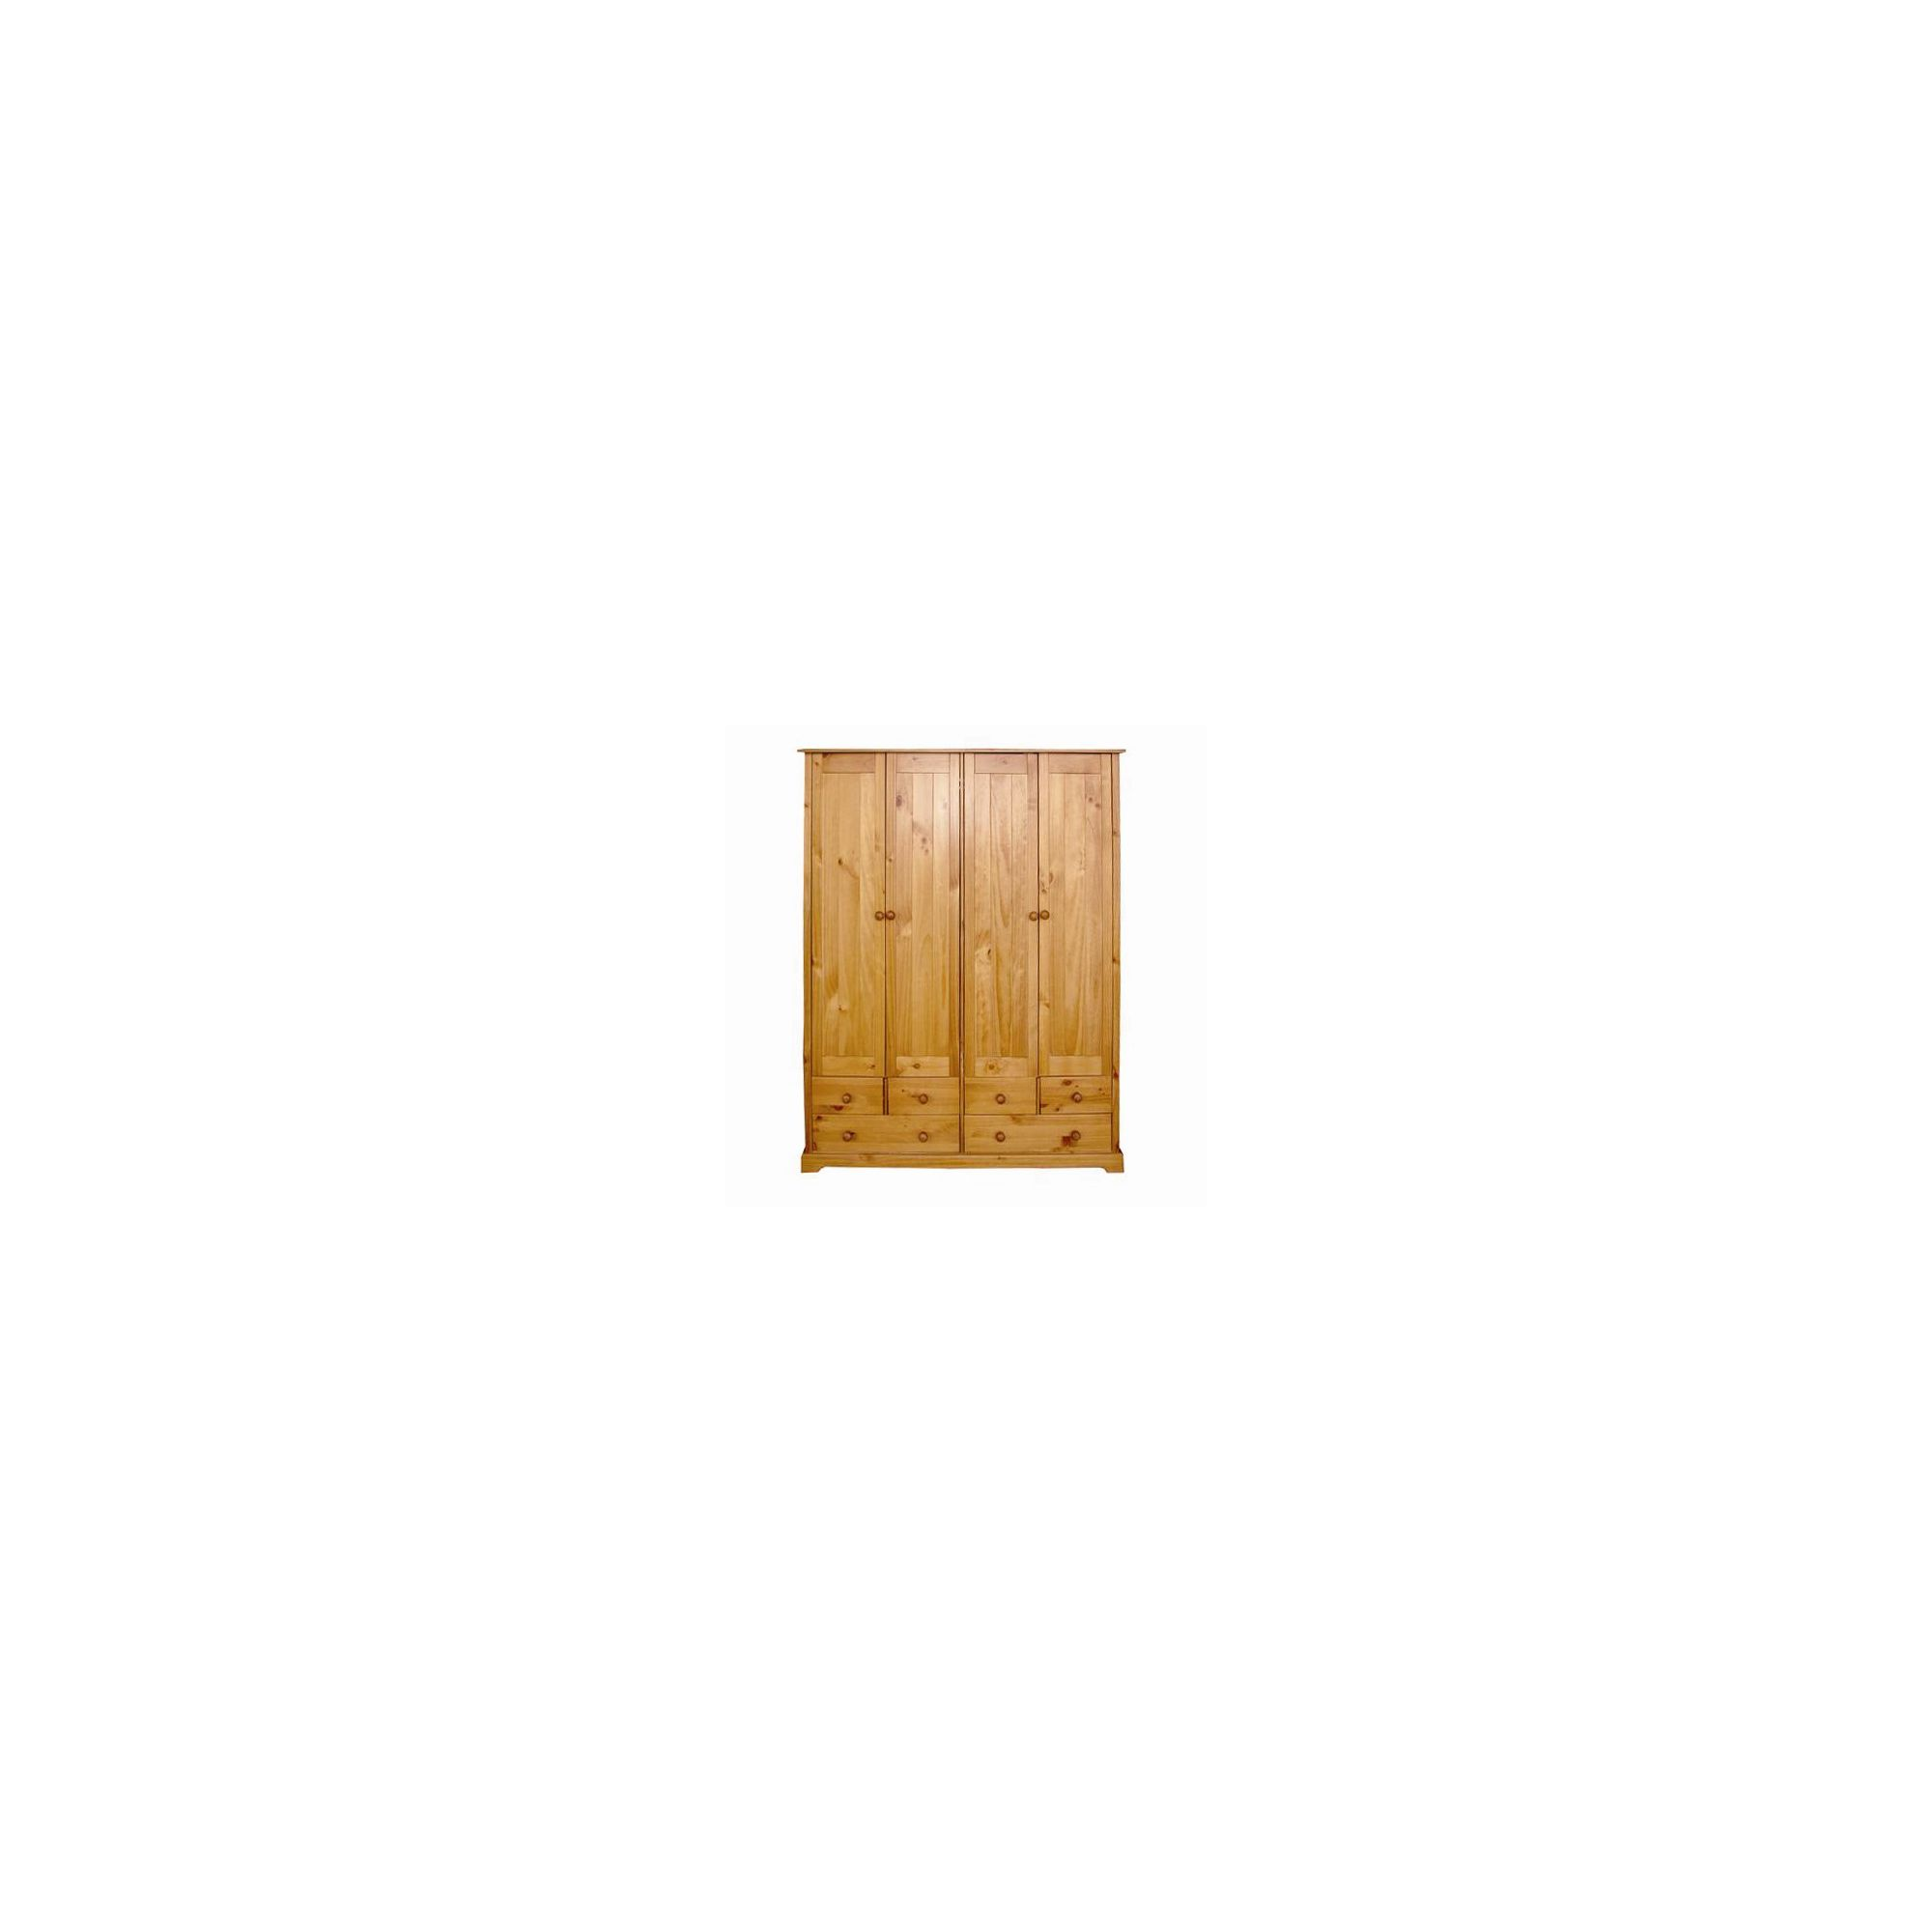 Home Zone Atlantic Four Door Wardrobe in Vintage Pine at Tesco Direct